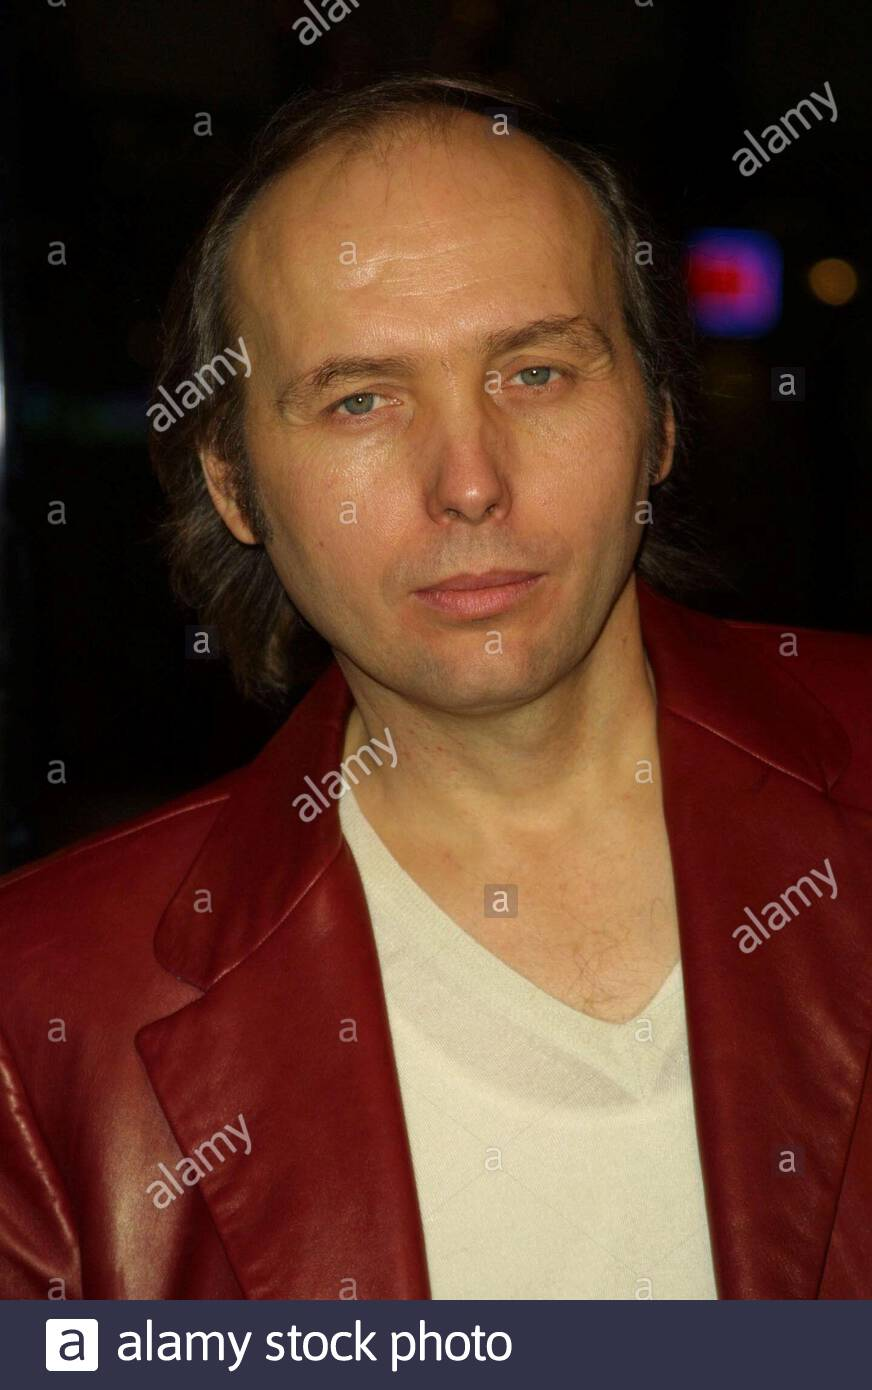 Dwight Yoakam At All The Pretty Horses Premiere At The Bruin Theater In La 12 17 2000 Credit 1239355globe Photos Mediapunch Stock Photo Alamy